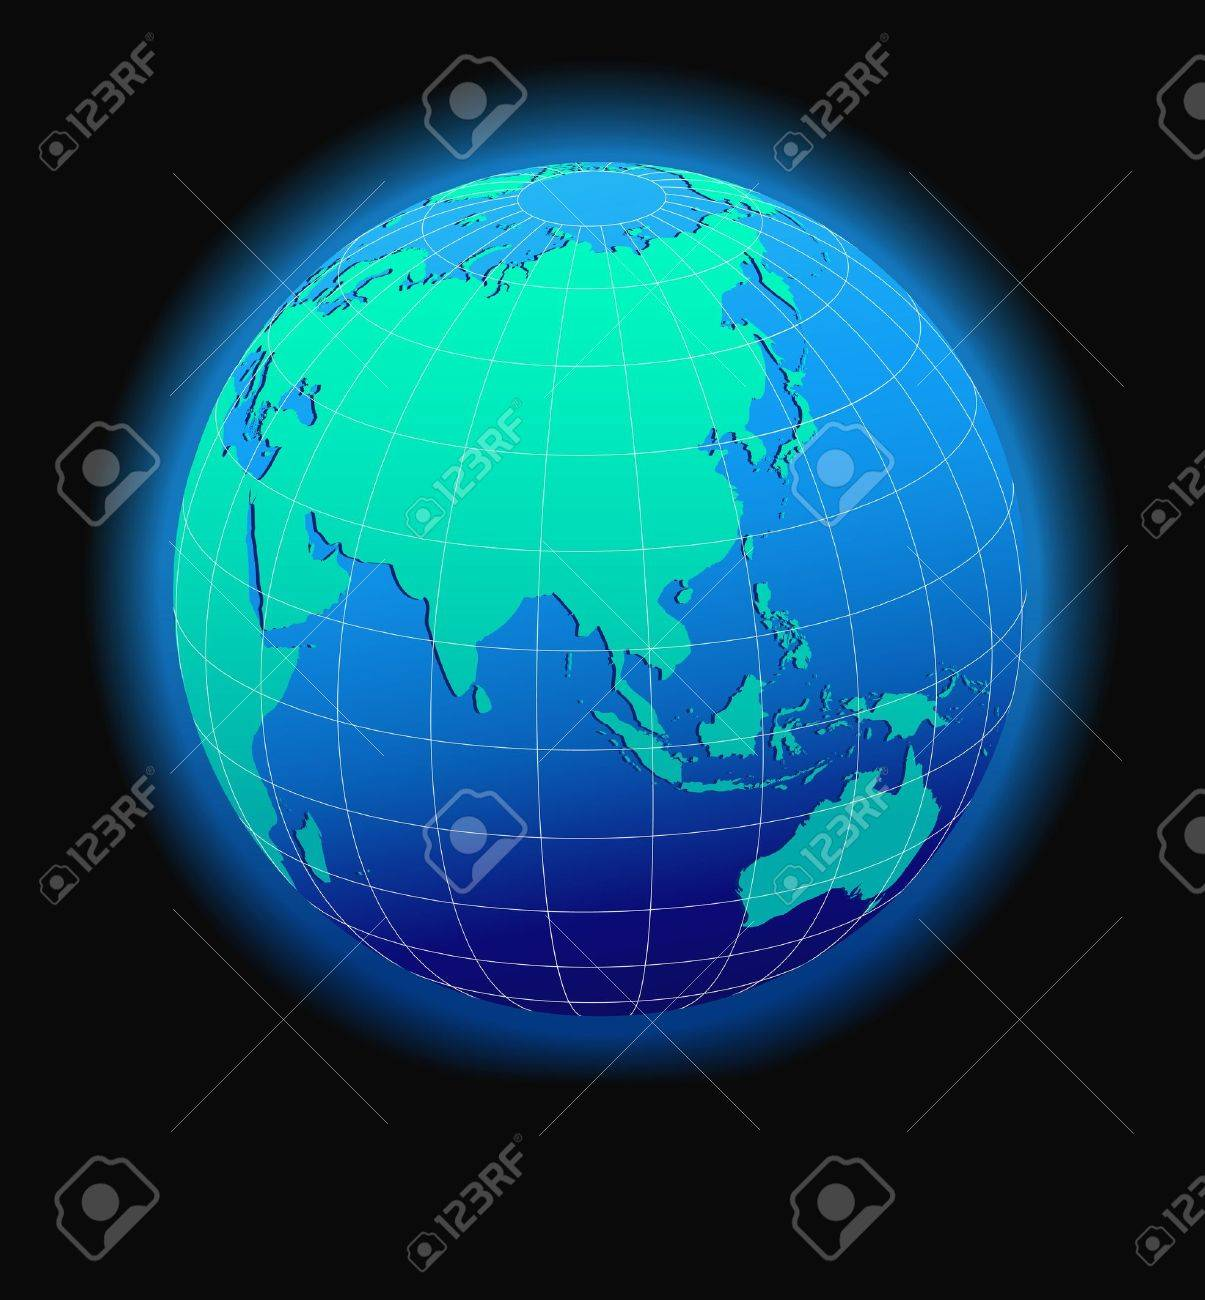 china and asia global world in space map icon of the world in globe